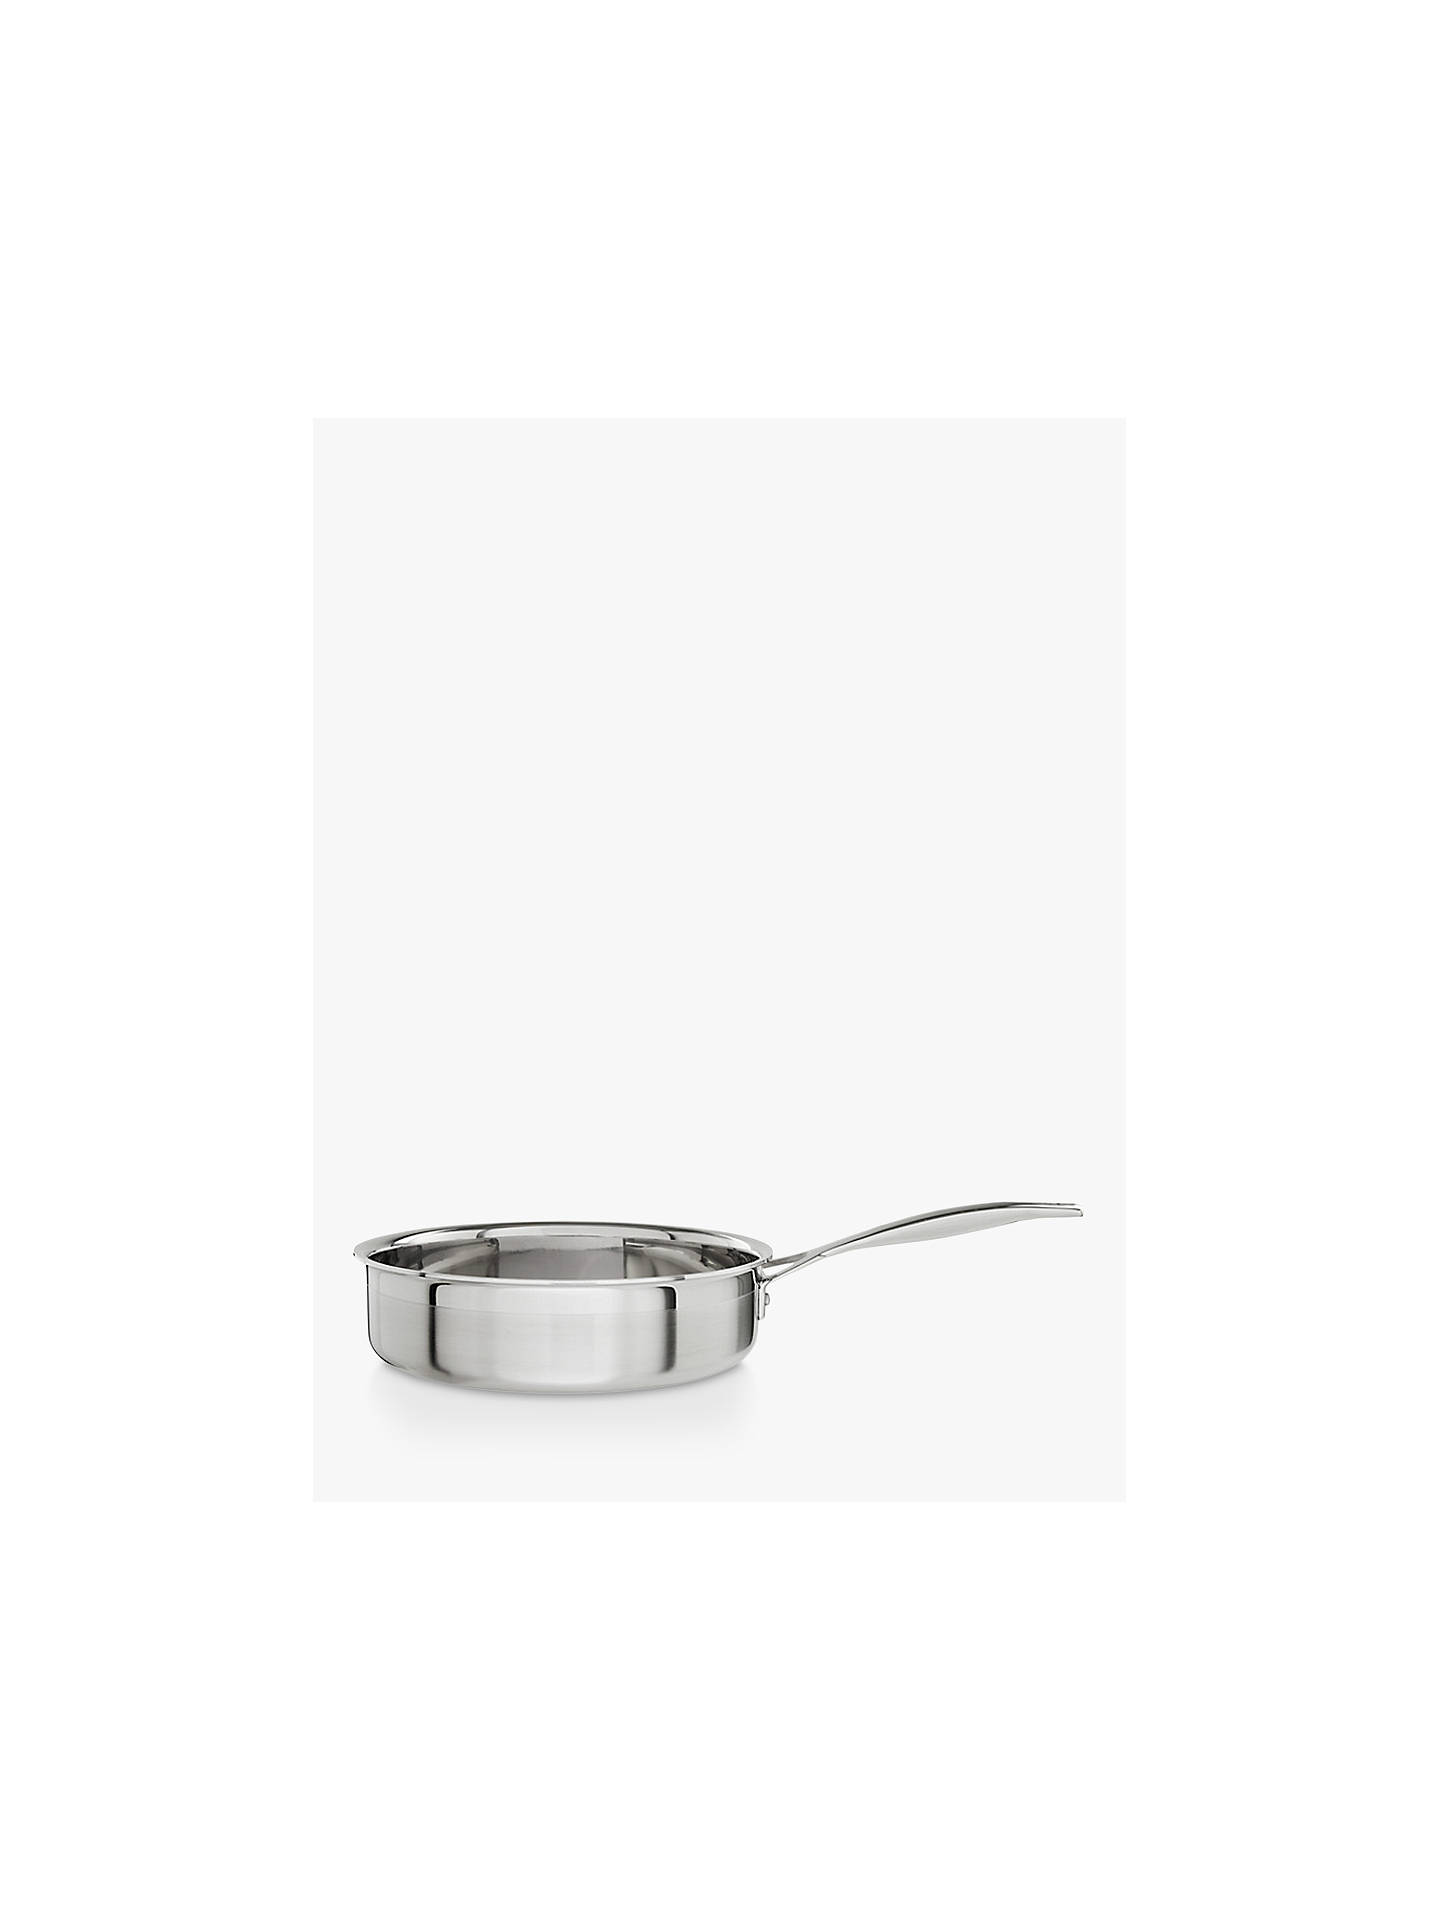 Buy Le Creuset 3-Ply Stainless Steel 24cm Sauté Pan with Lid Online at johnlewis.com